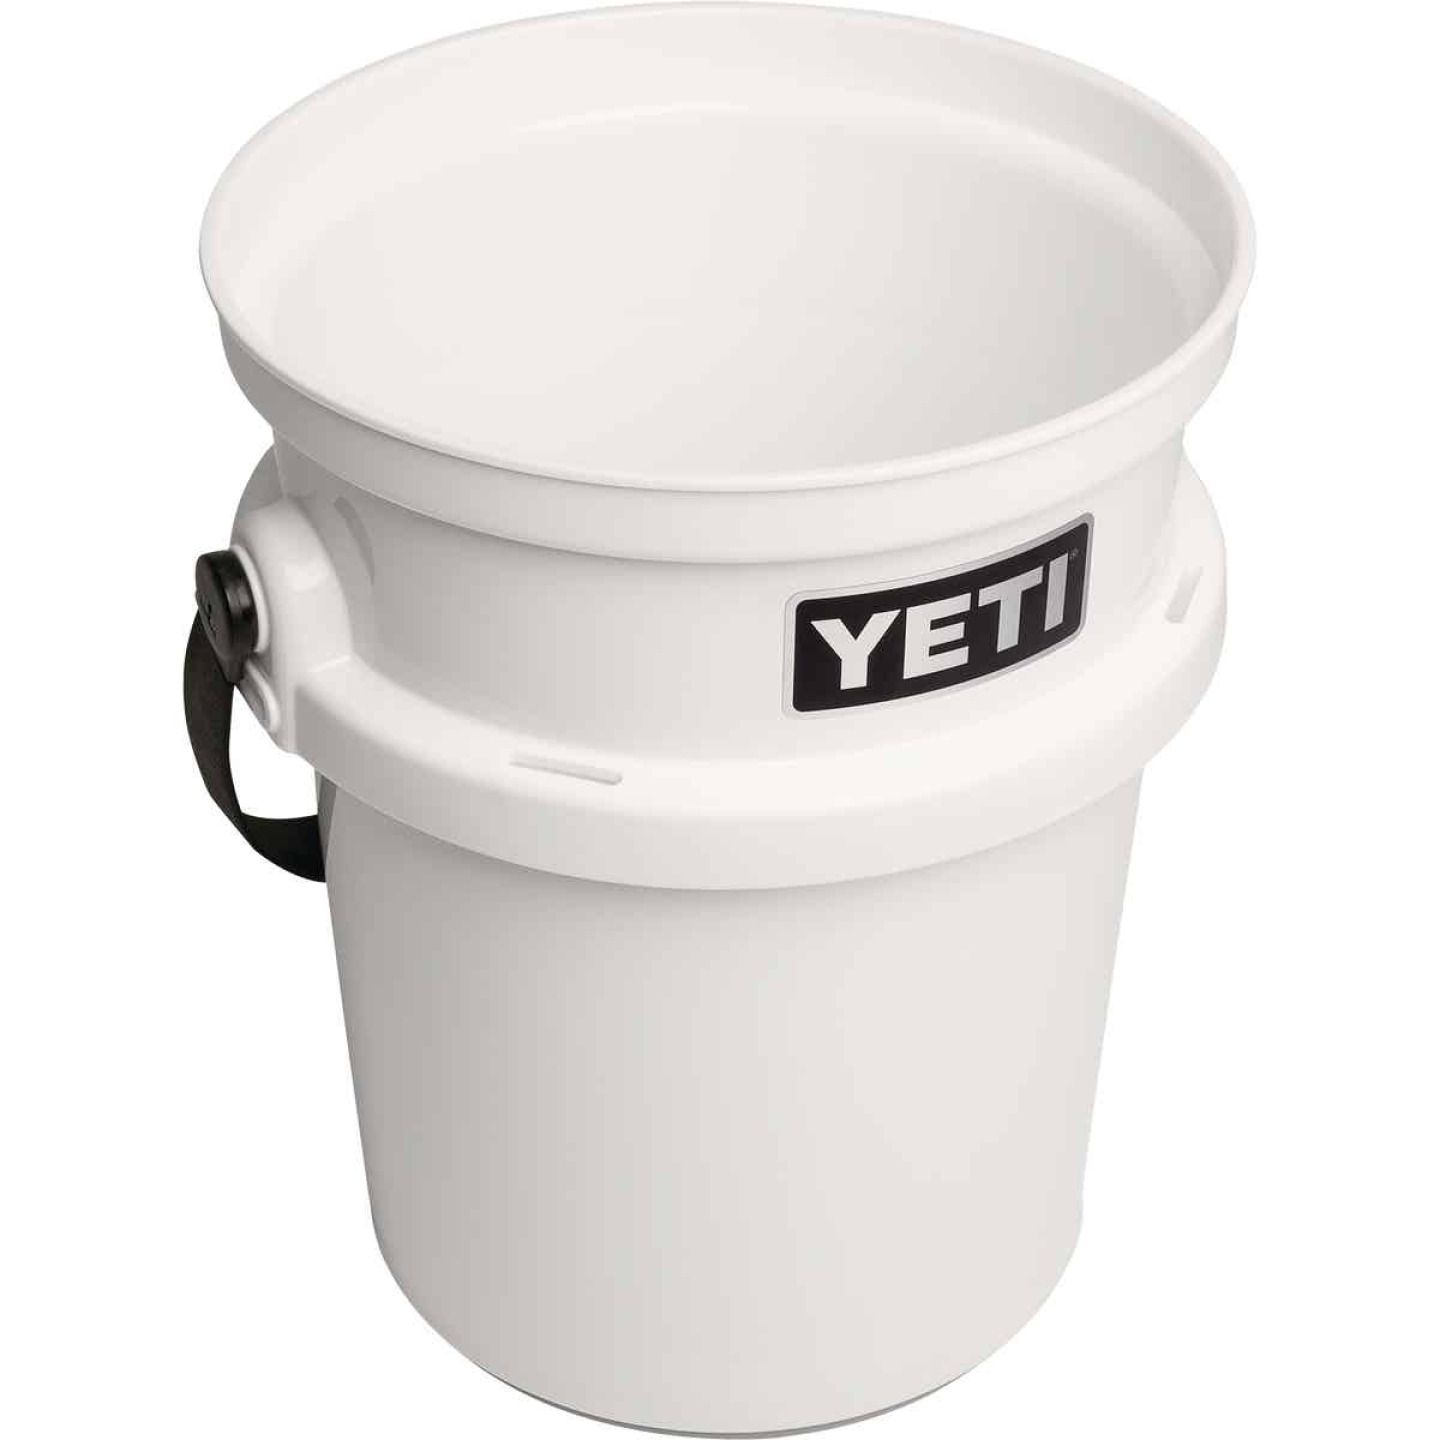 Yeti LoadOut 5 Gal. White Bucket Image 2